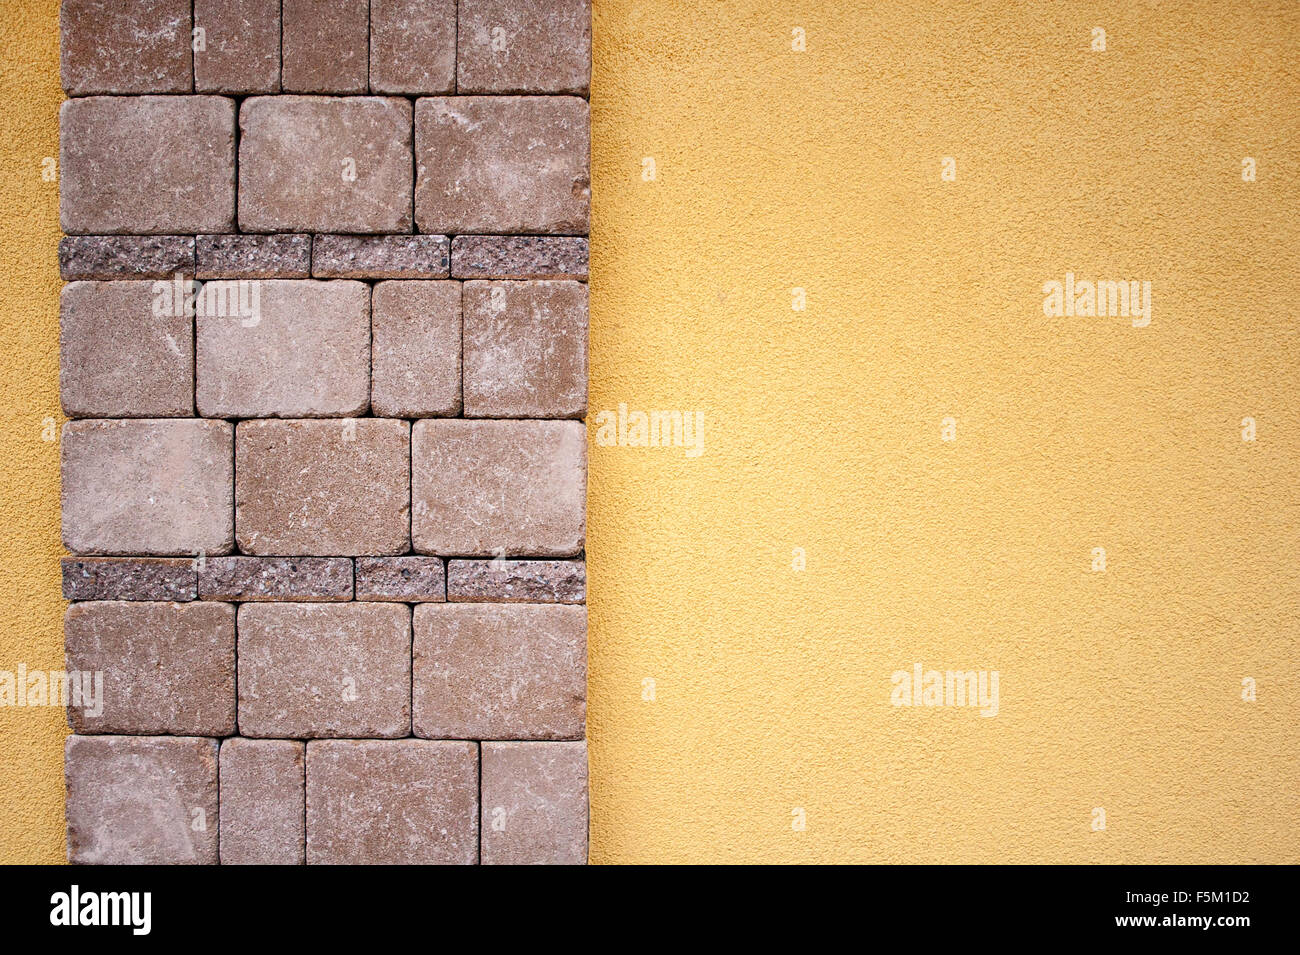 Yellow concrete wall with stone design on the left side Stock Photo ...